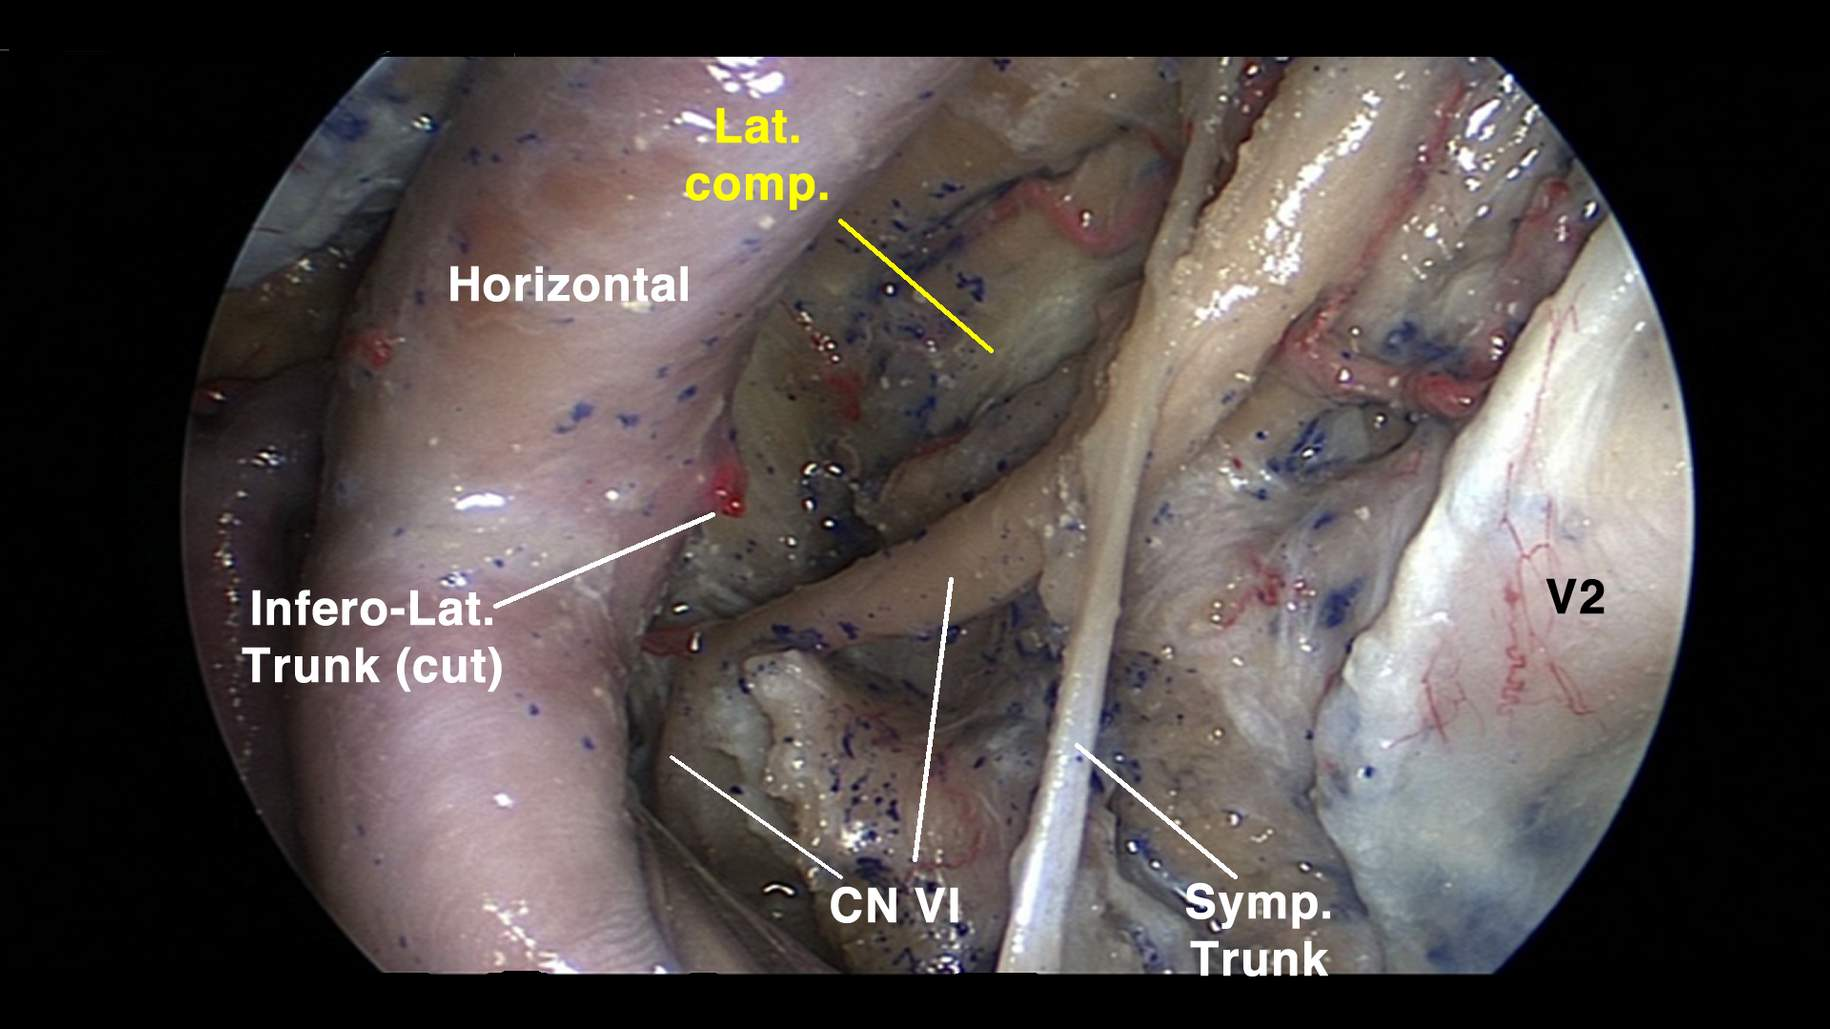 Figure 9: This endoscopic view of the left cavernous sinus lateral wall shows the entire course of the abducens nerve (CN VI) and its anatomic relationships to the short vertical segment of the ICA and the inferolateral trunk (Infero-Lat. Trunk). Lat. comp. — lateral compartment; Symp. Trunk — sympathetic trunk (image courtesy of Juan Fernandez-Miranda).